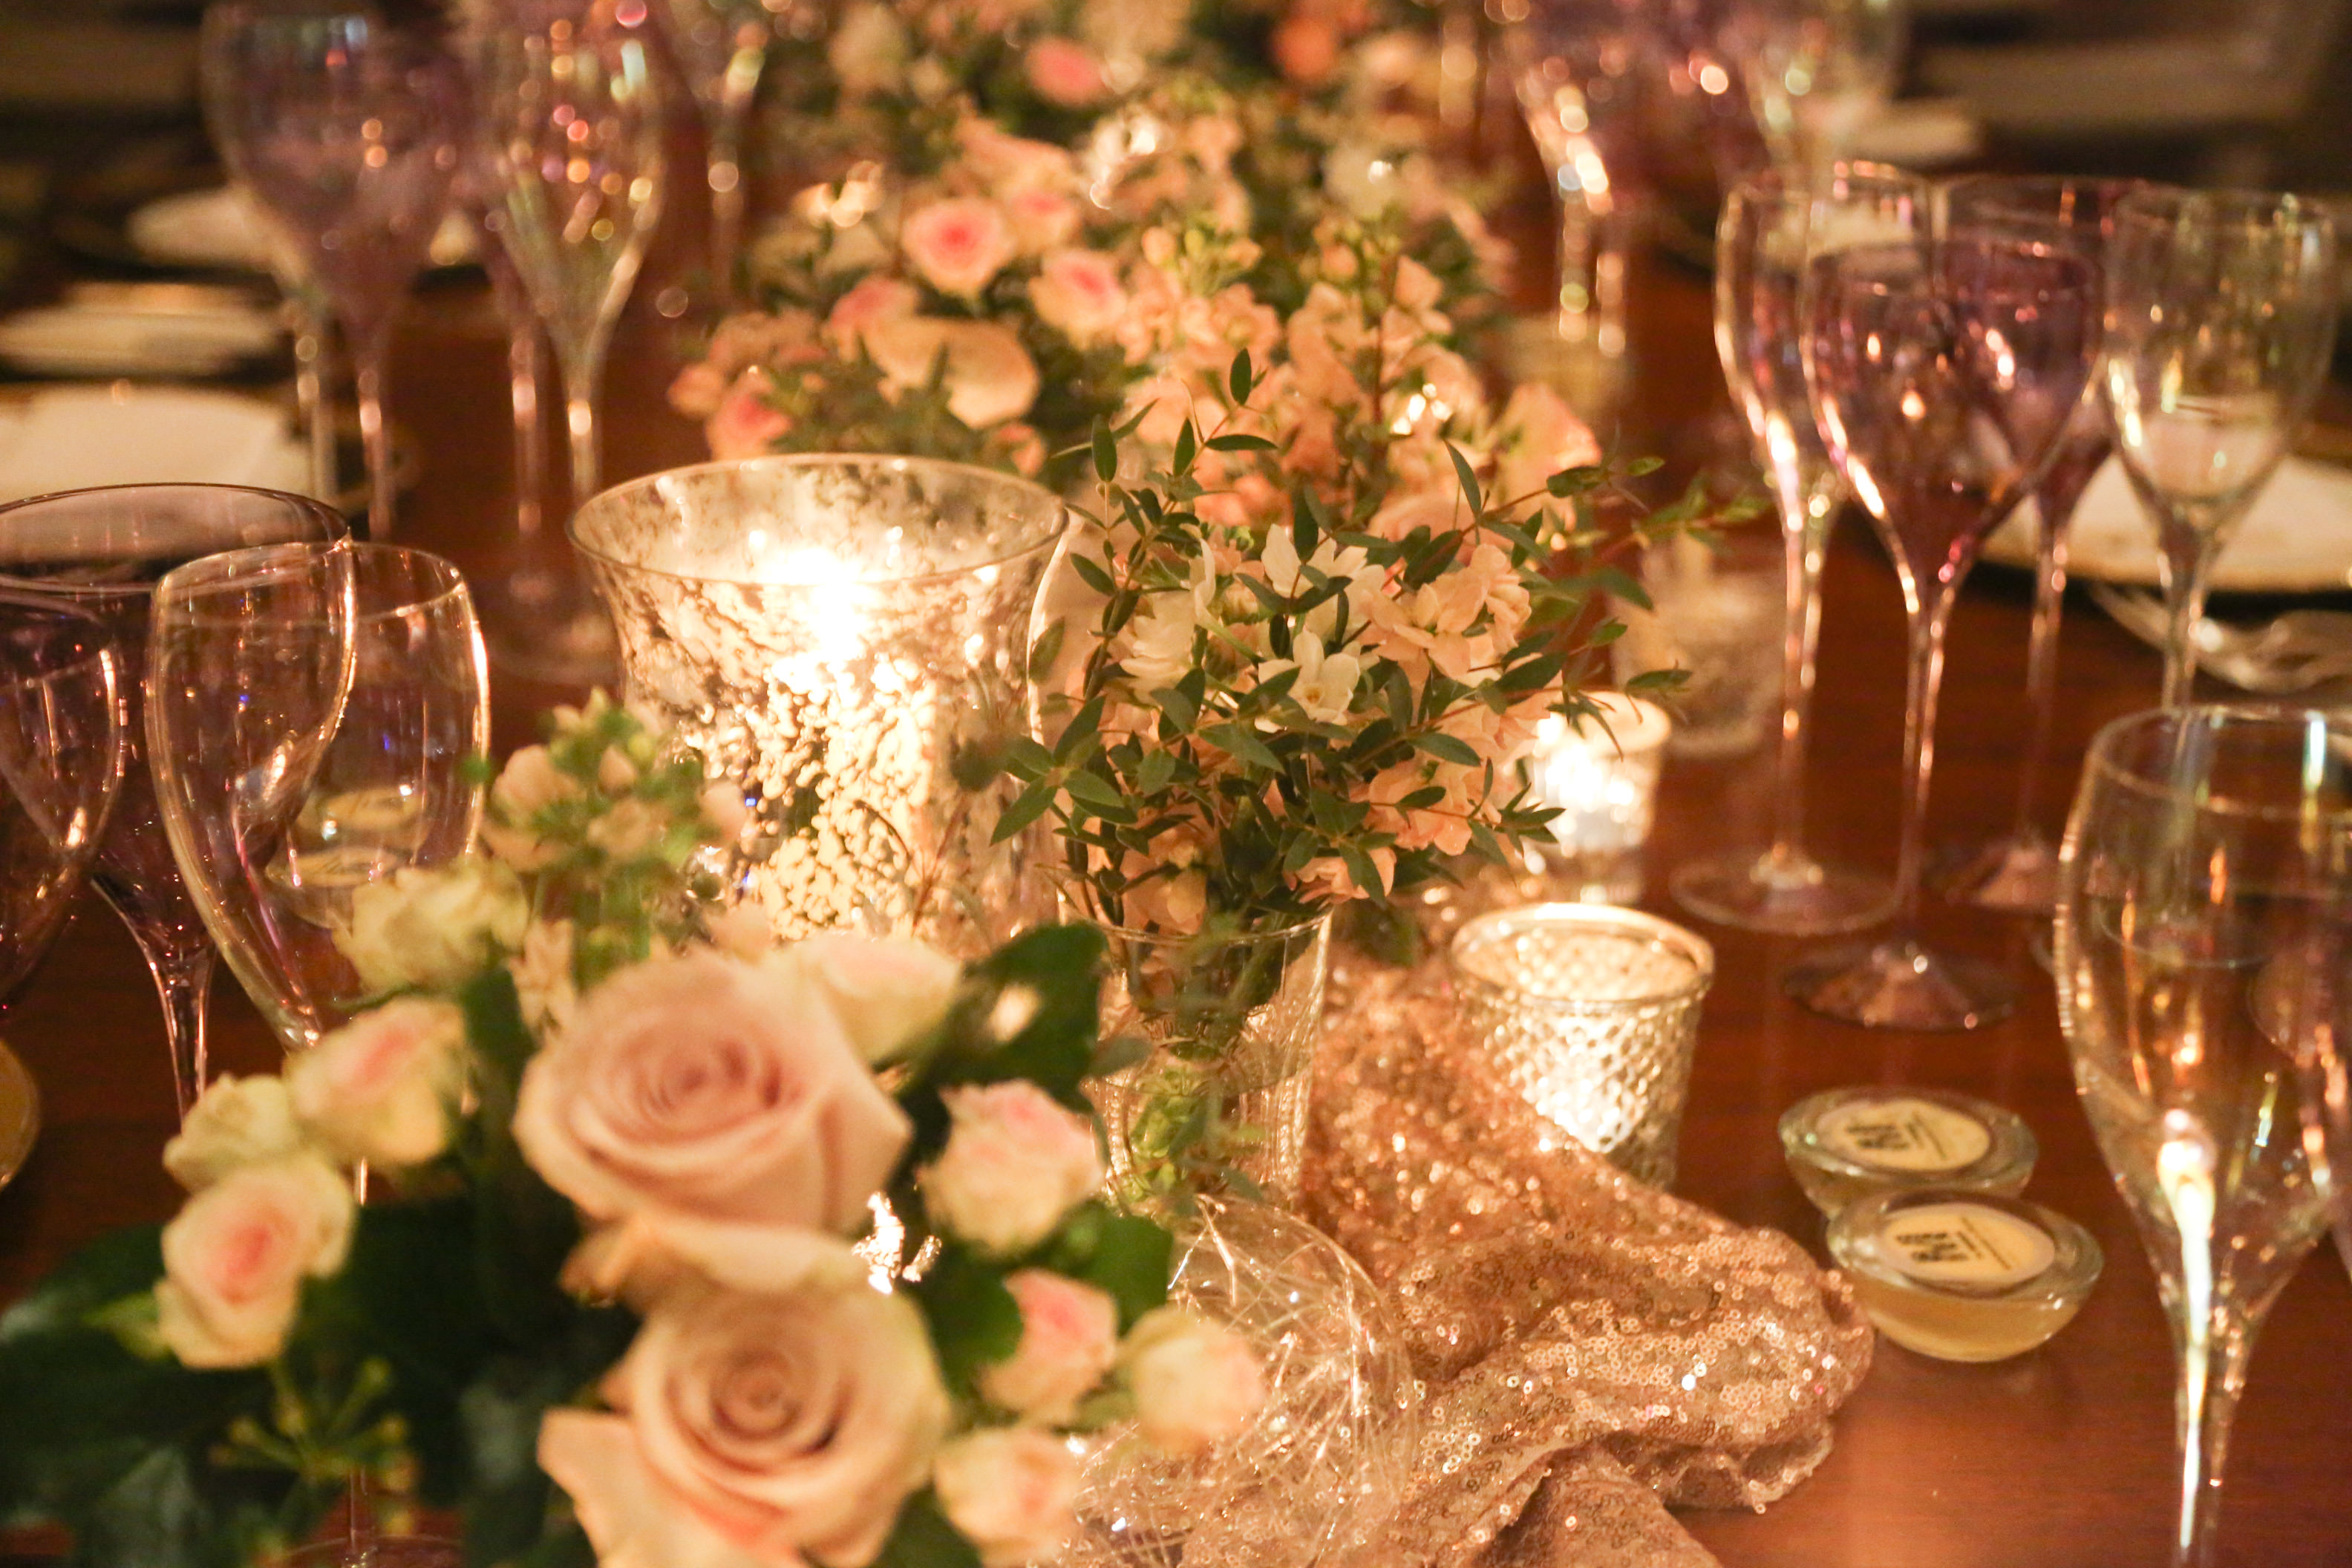 Sequin runner, candle & floral table decoration